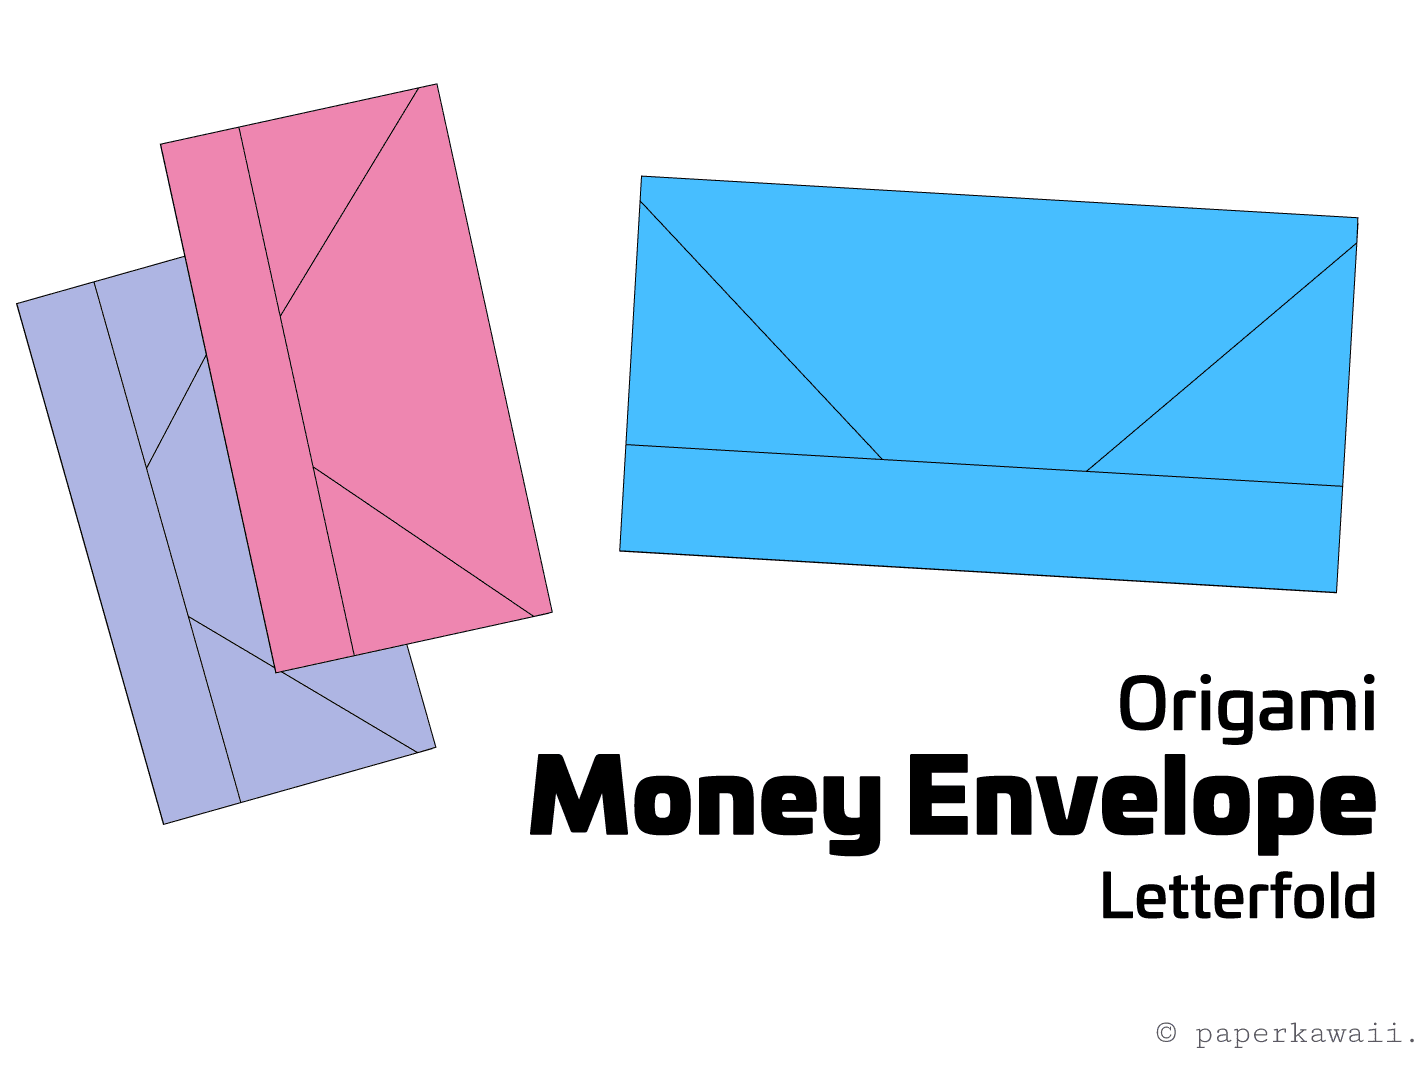 Origami Bar Envelope Instructions | Origami, Envelope, Instruction | 1066x1421